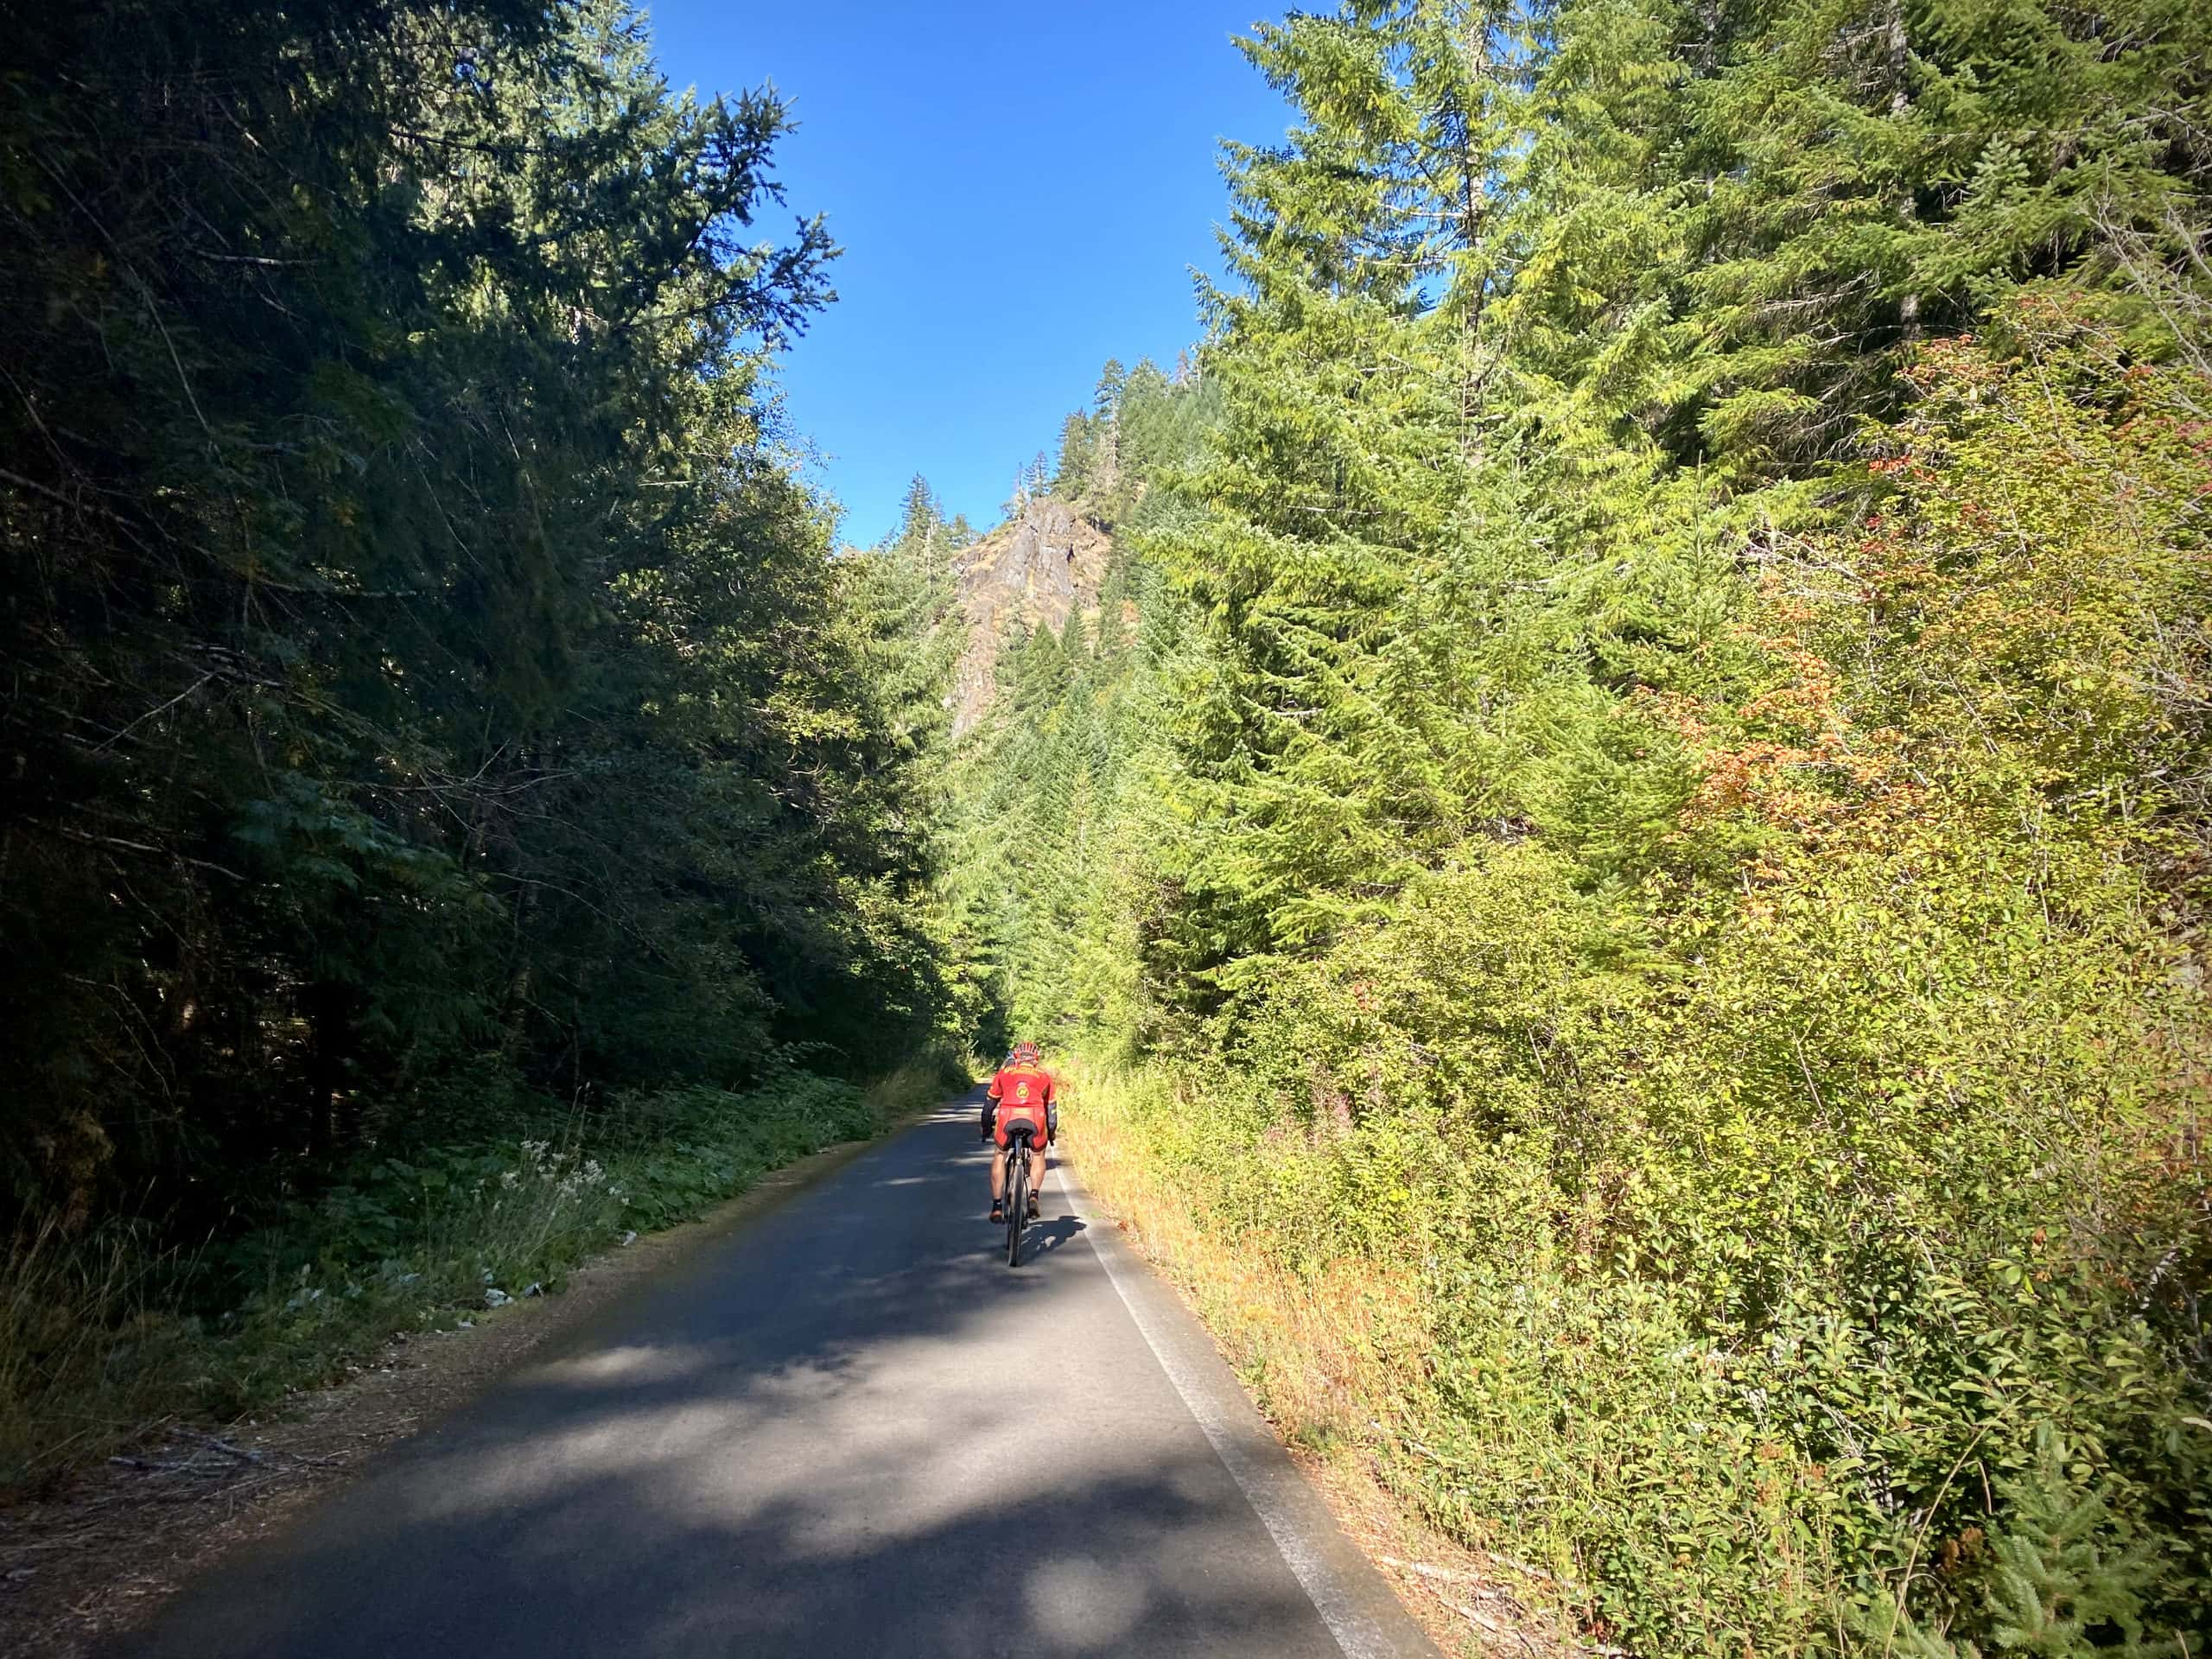 Cyclists descending NF-22 in the Willamette National Forest.